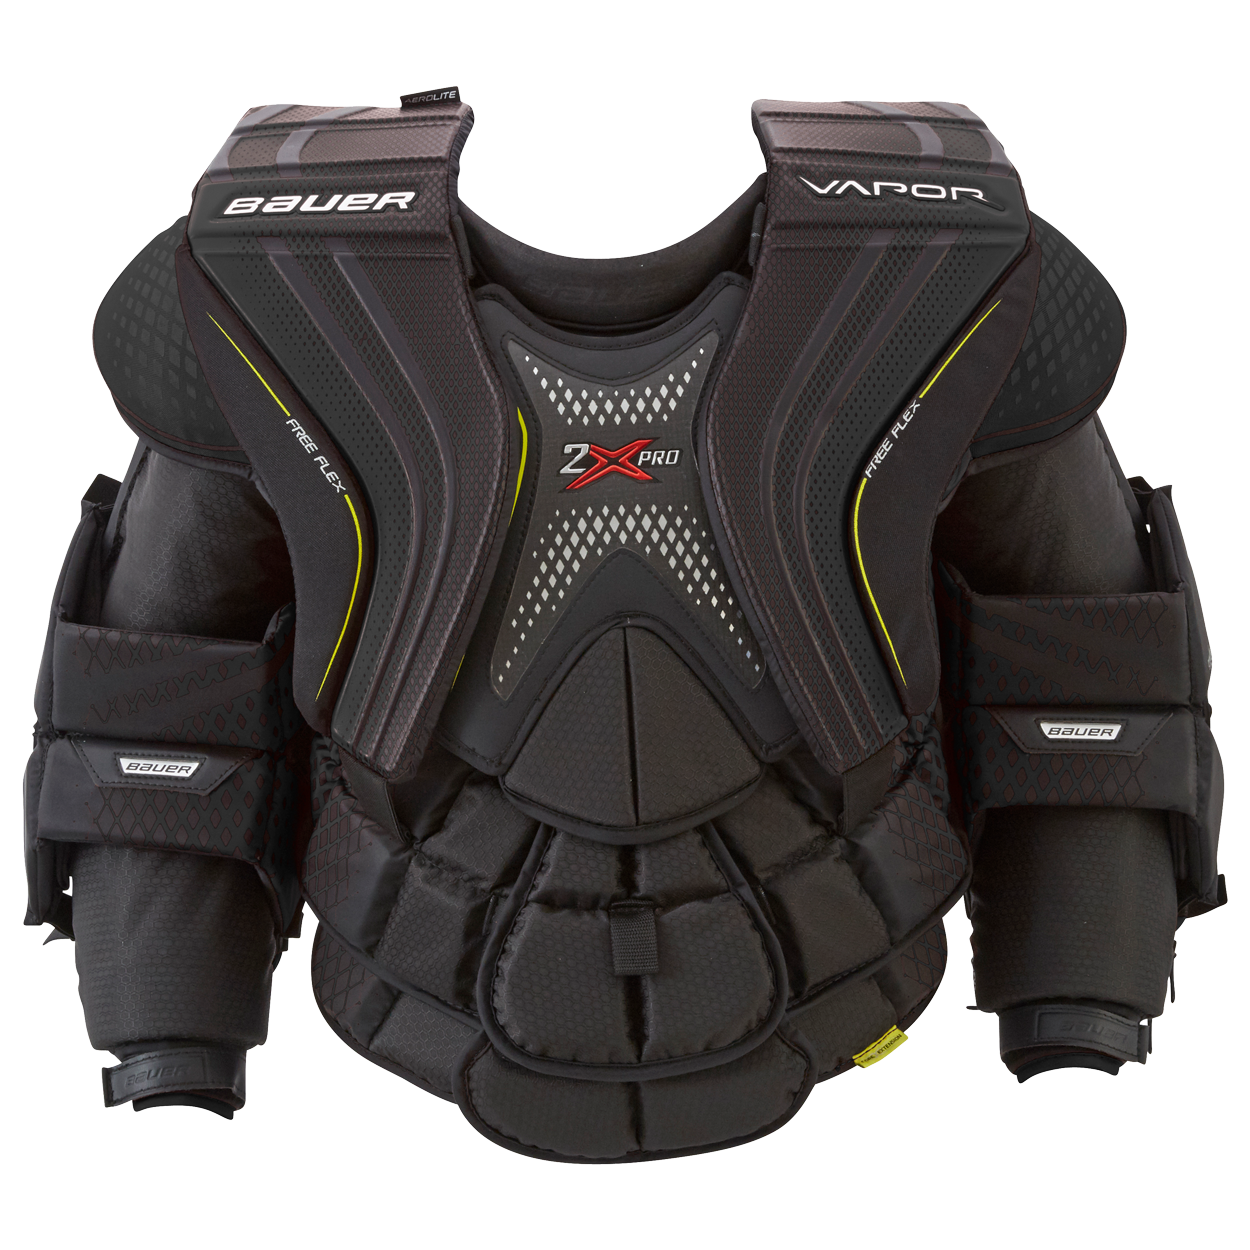 Vapor 2X PRO Chest Protector Senior,,Medium